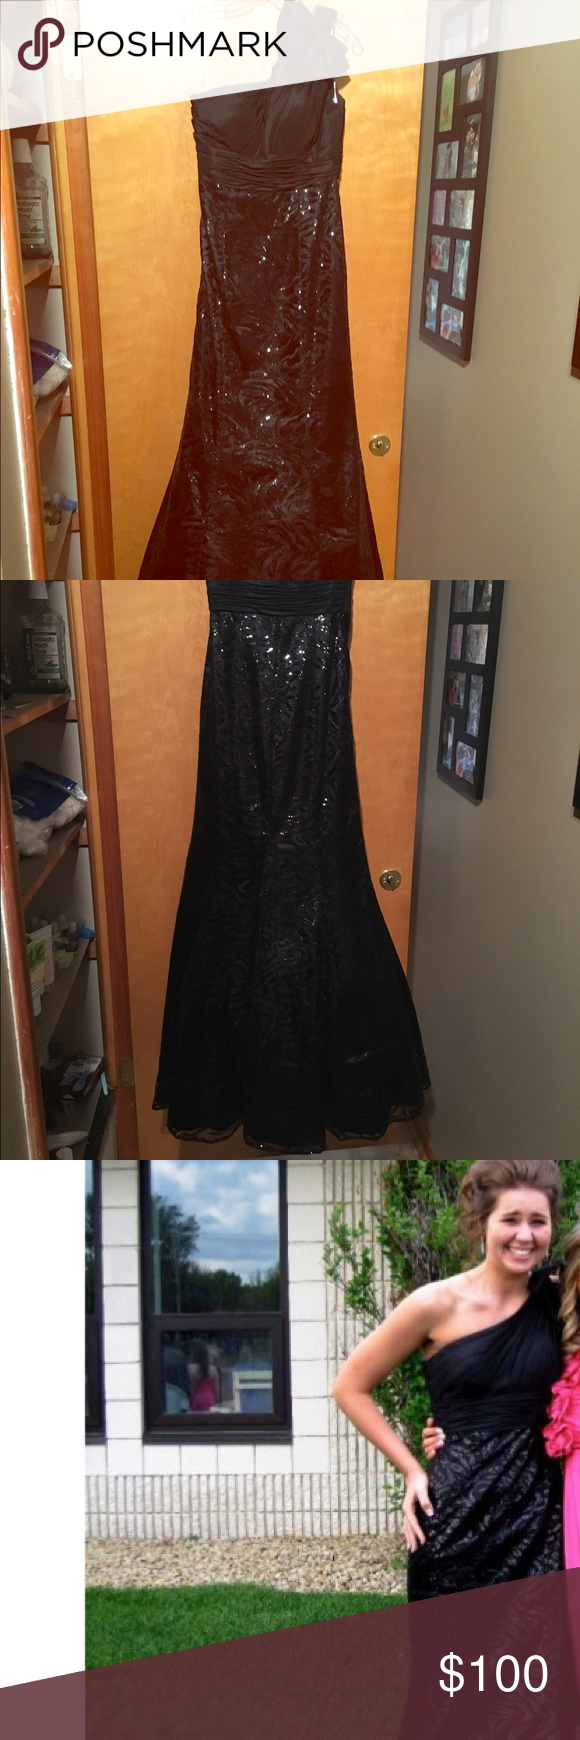 Sequined black prom dress black prom dresses dress prom and prom